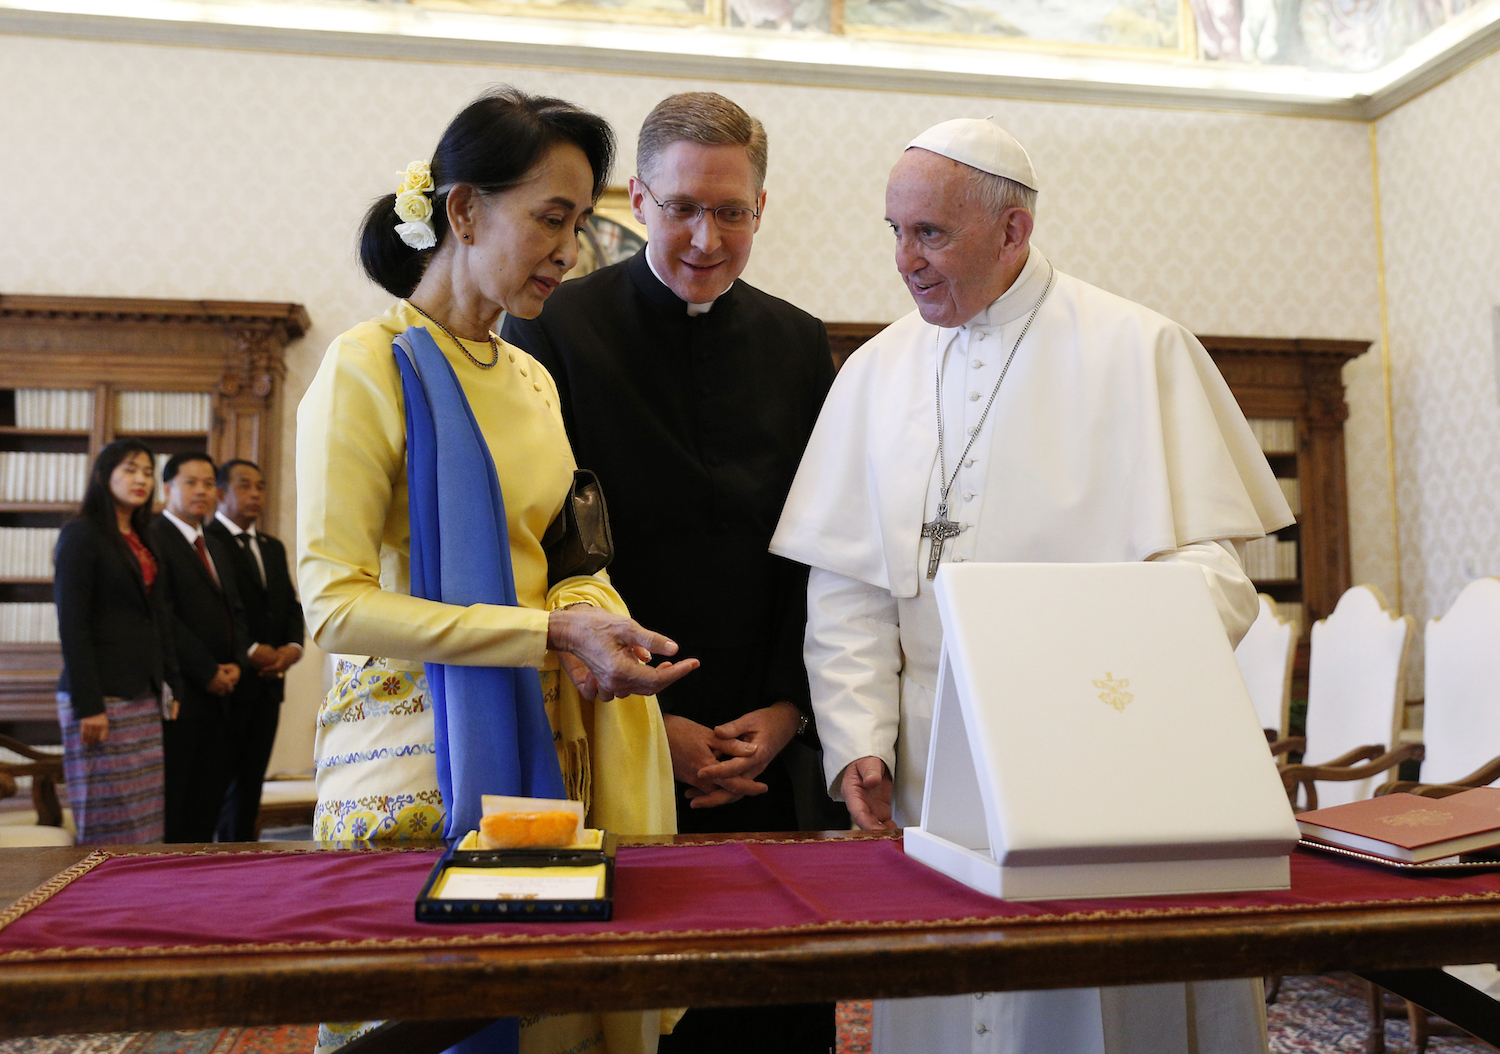 Pope Francis greets Aung San Suu Kyi, leader of Myanmar, during a private audience at the Vatican May 4. (CNS photo/Paul Haring)